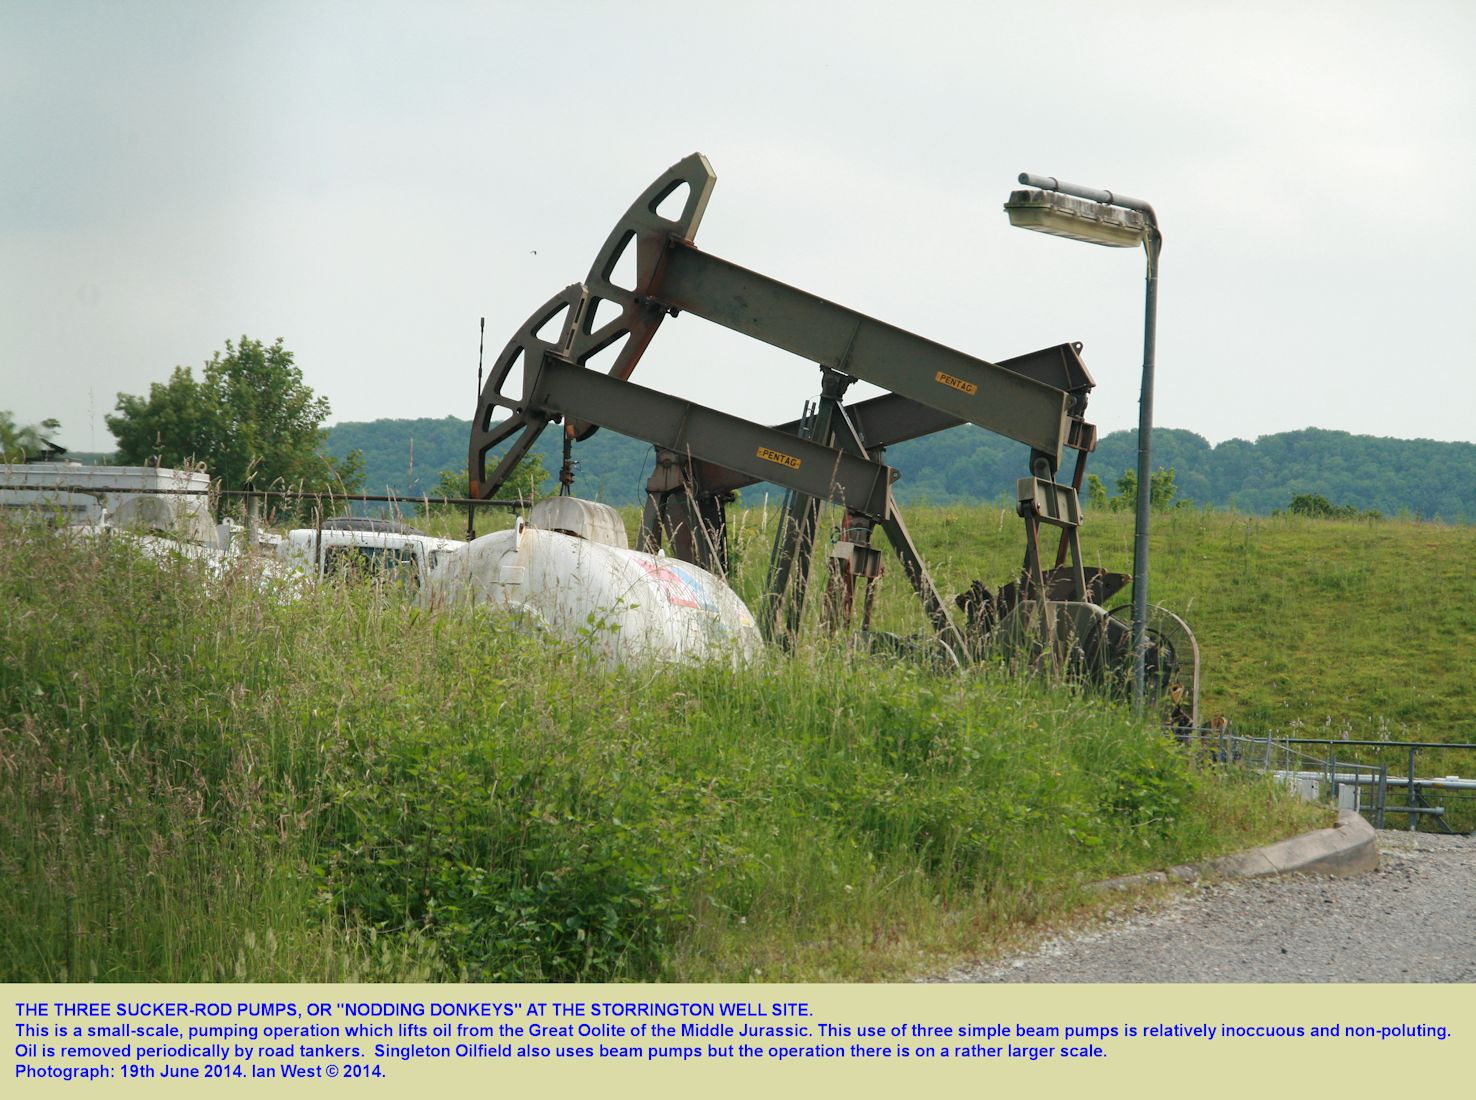 Three beam pumps at the small Storrington Oilfield, West Sussex, 19th June 2014